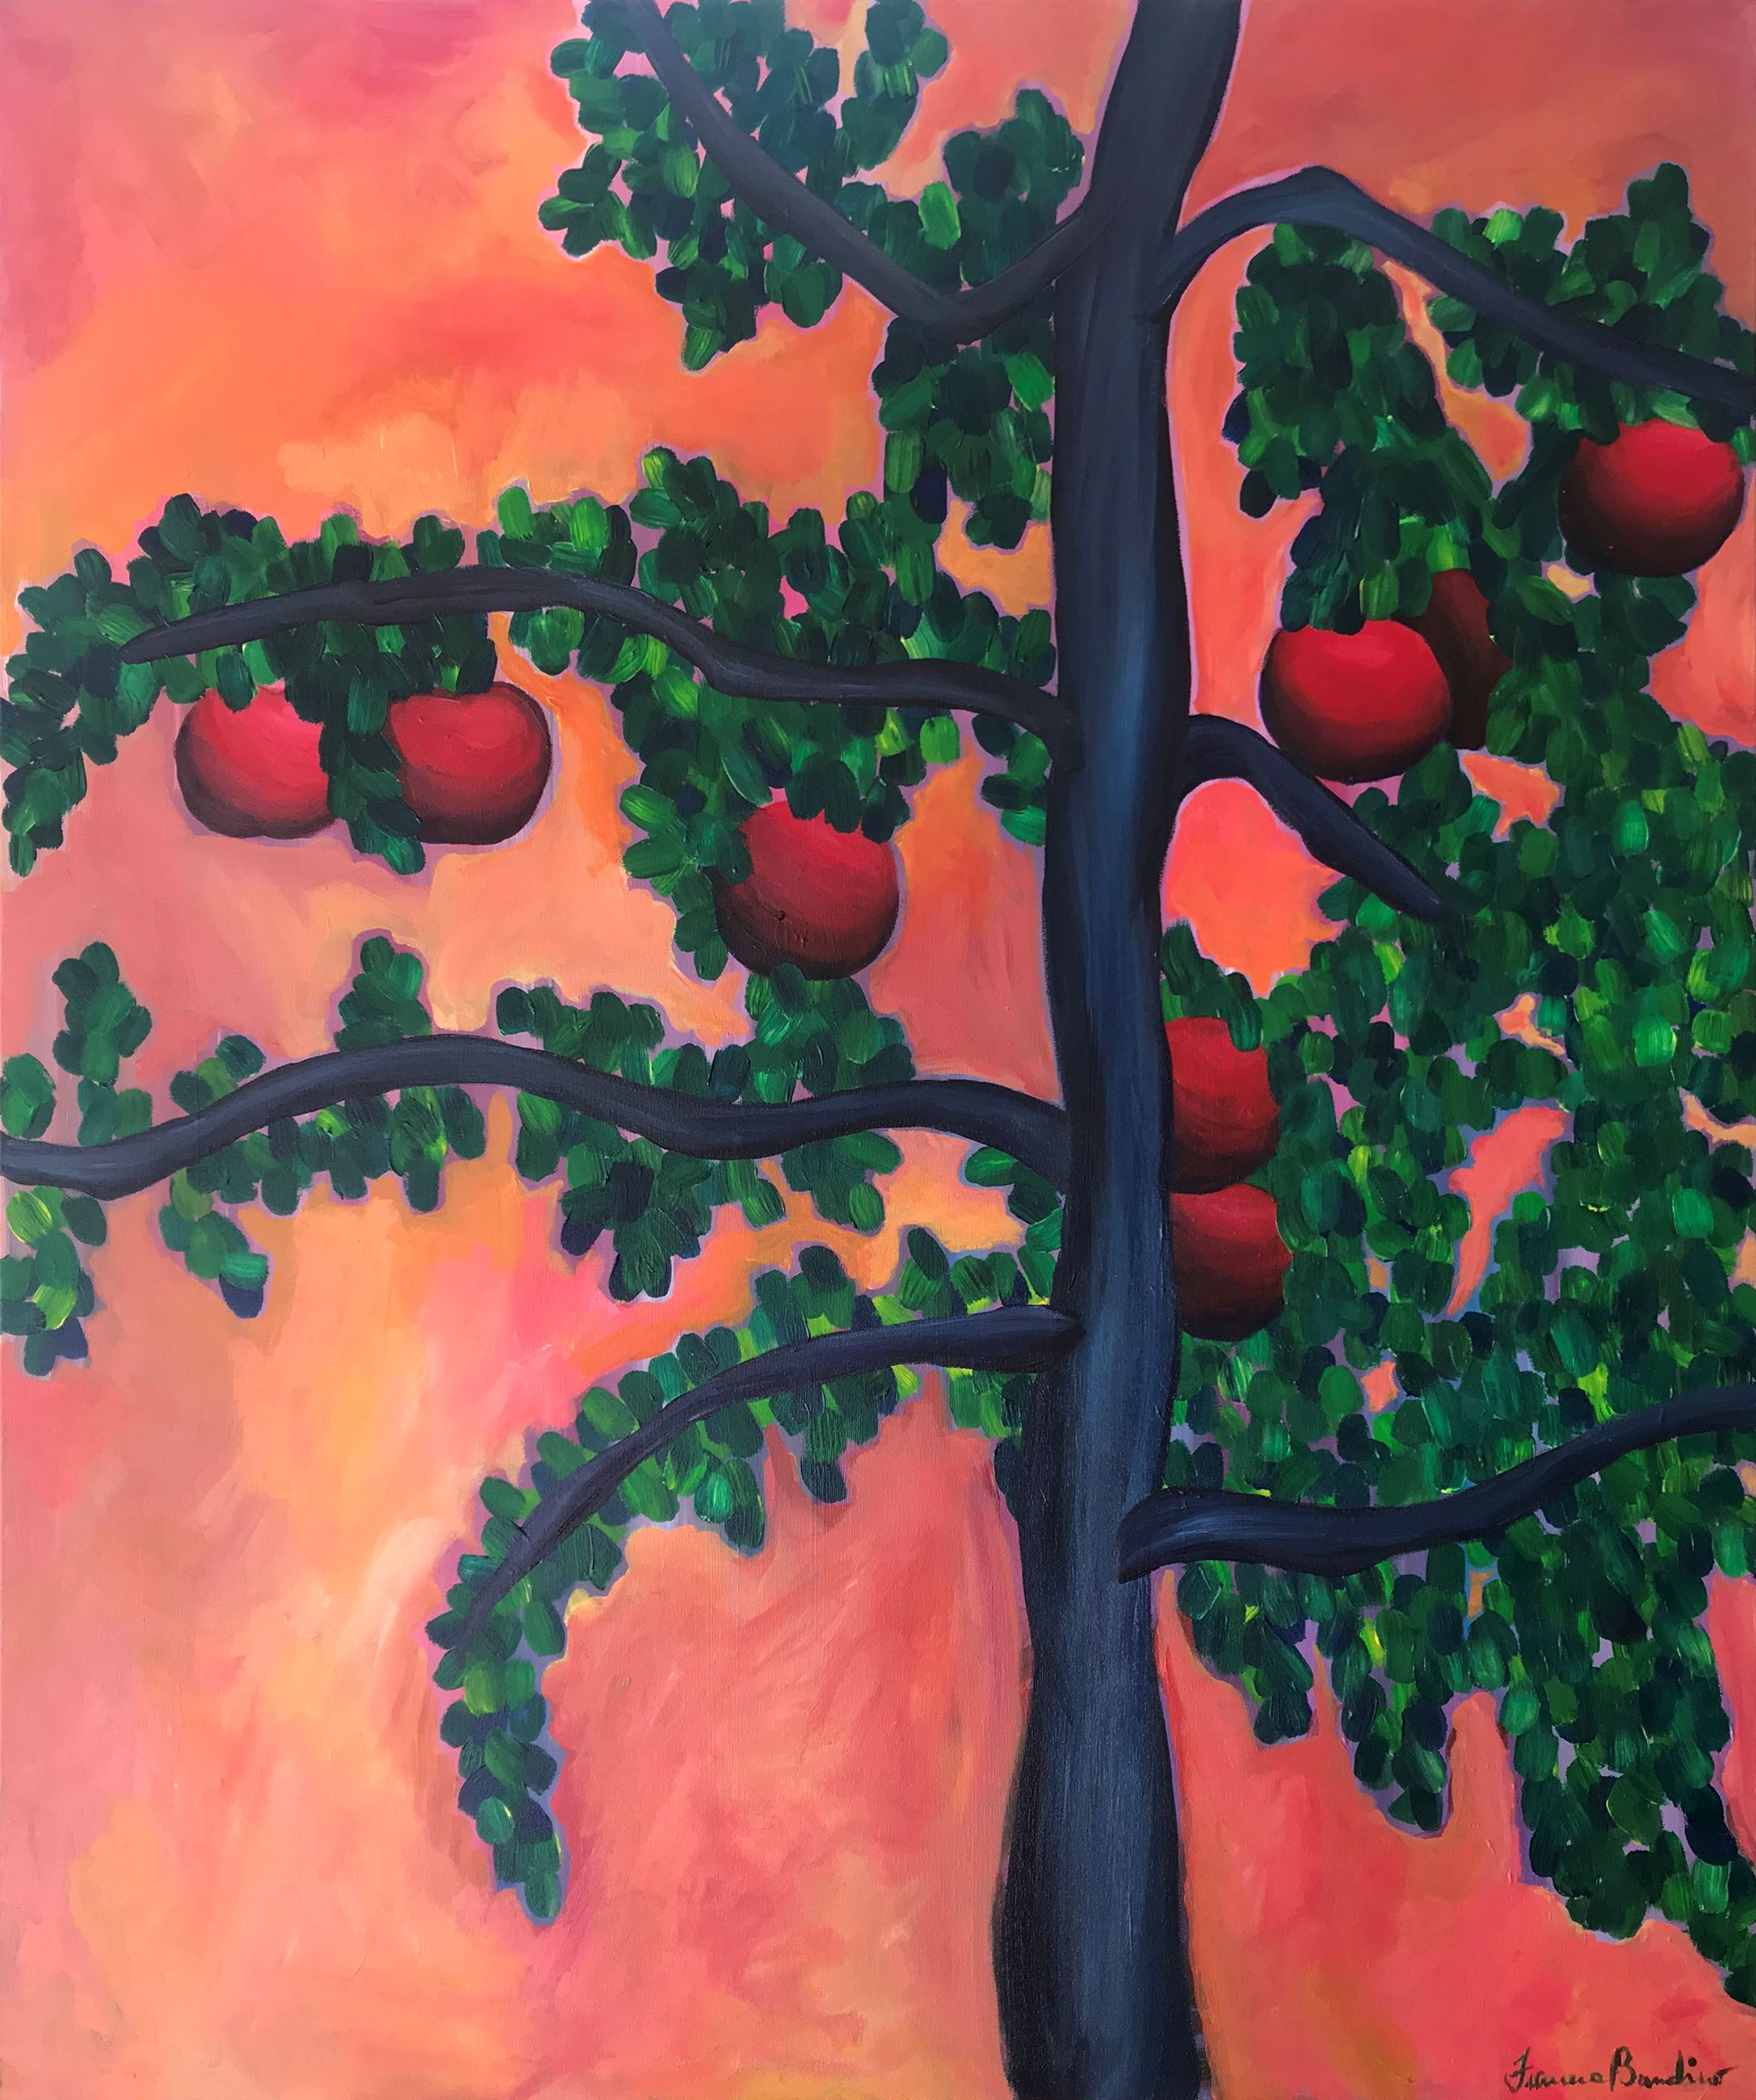 Painting of red apples on a tree